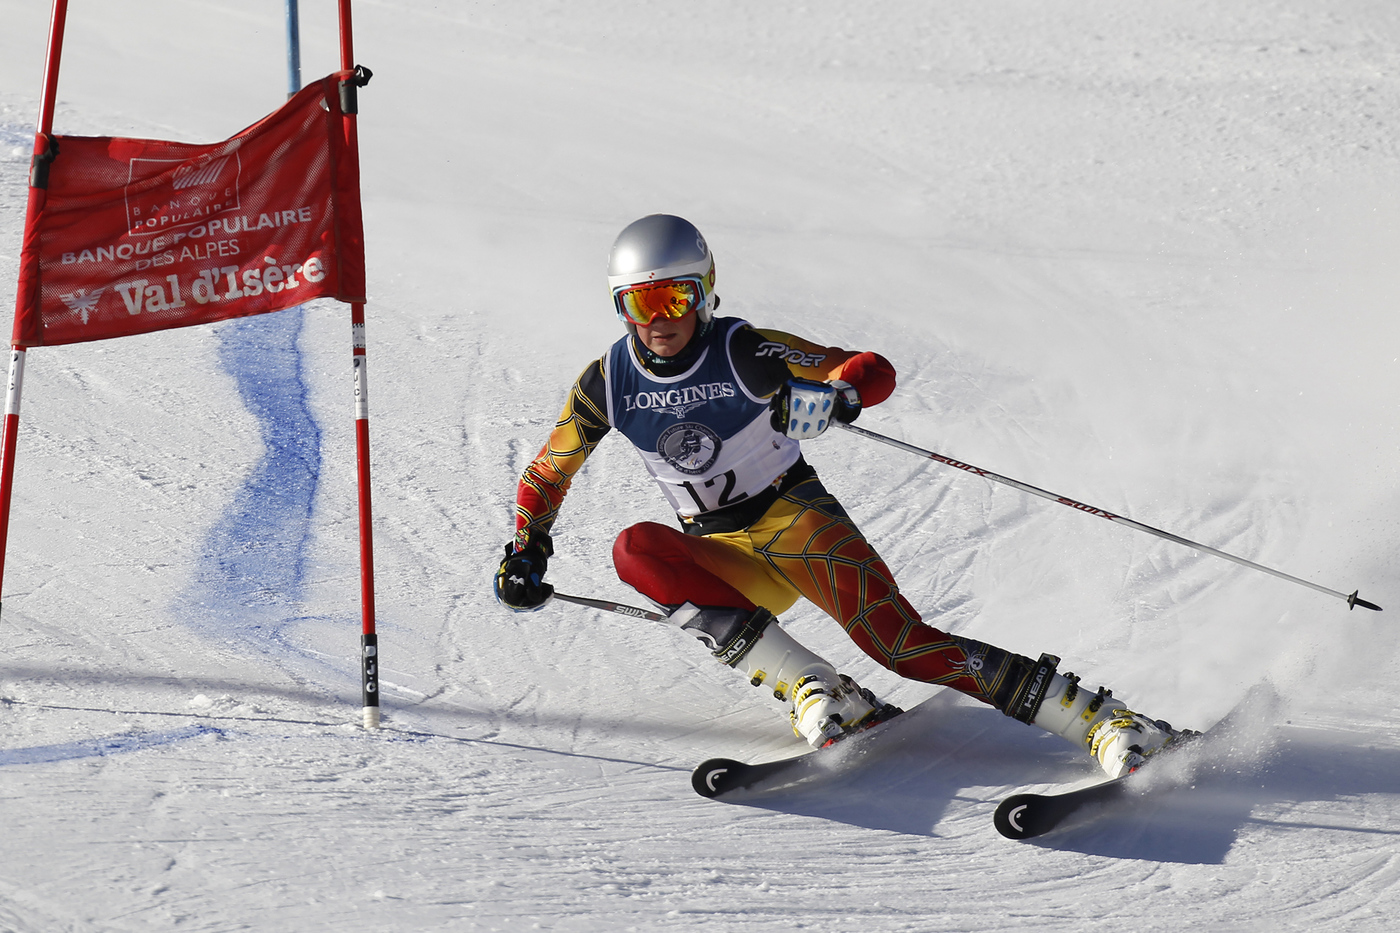 Longines Alpine Skiing Event: The Longines Future Ski Champion 2013 15